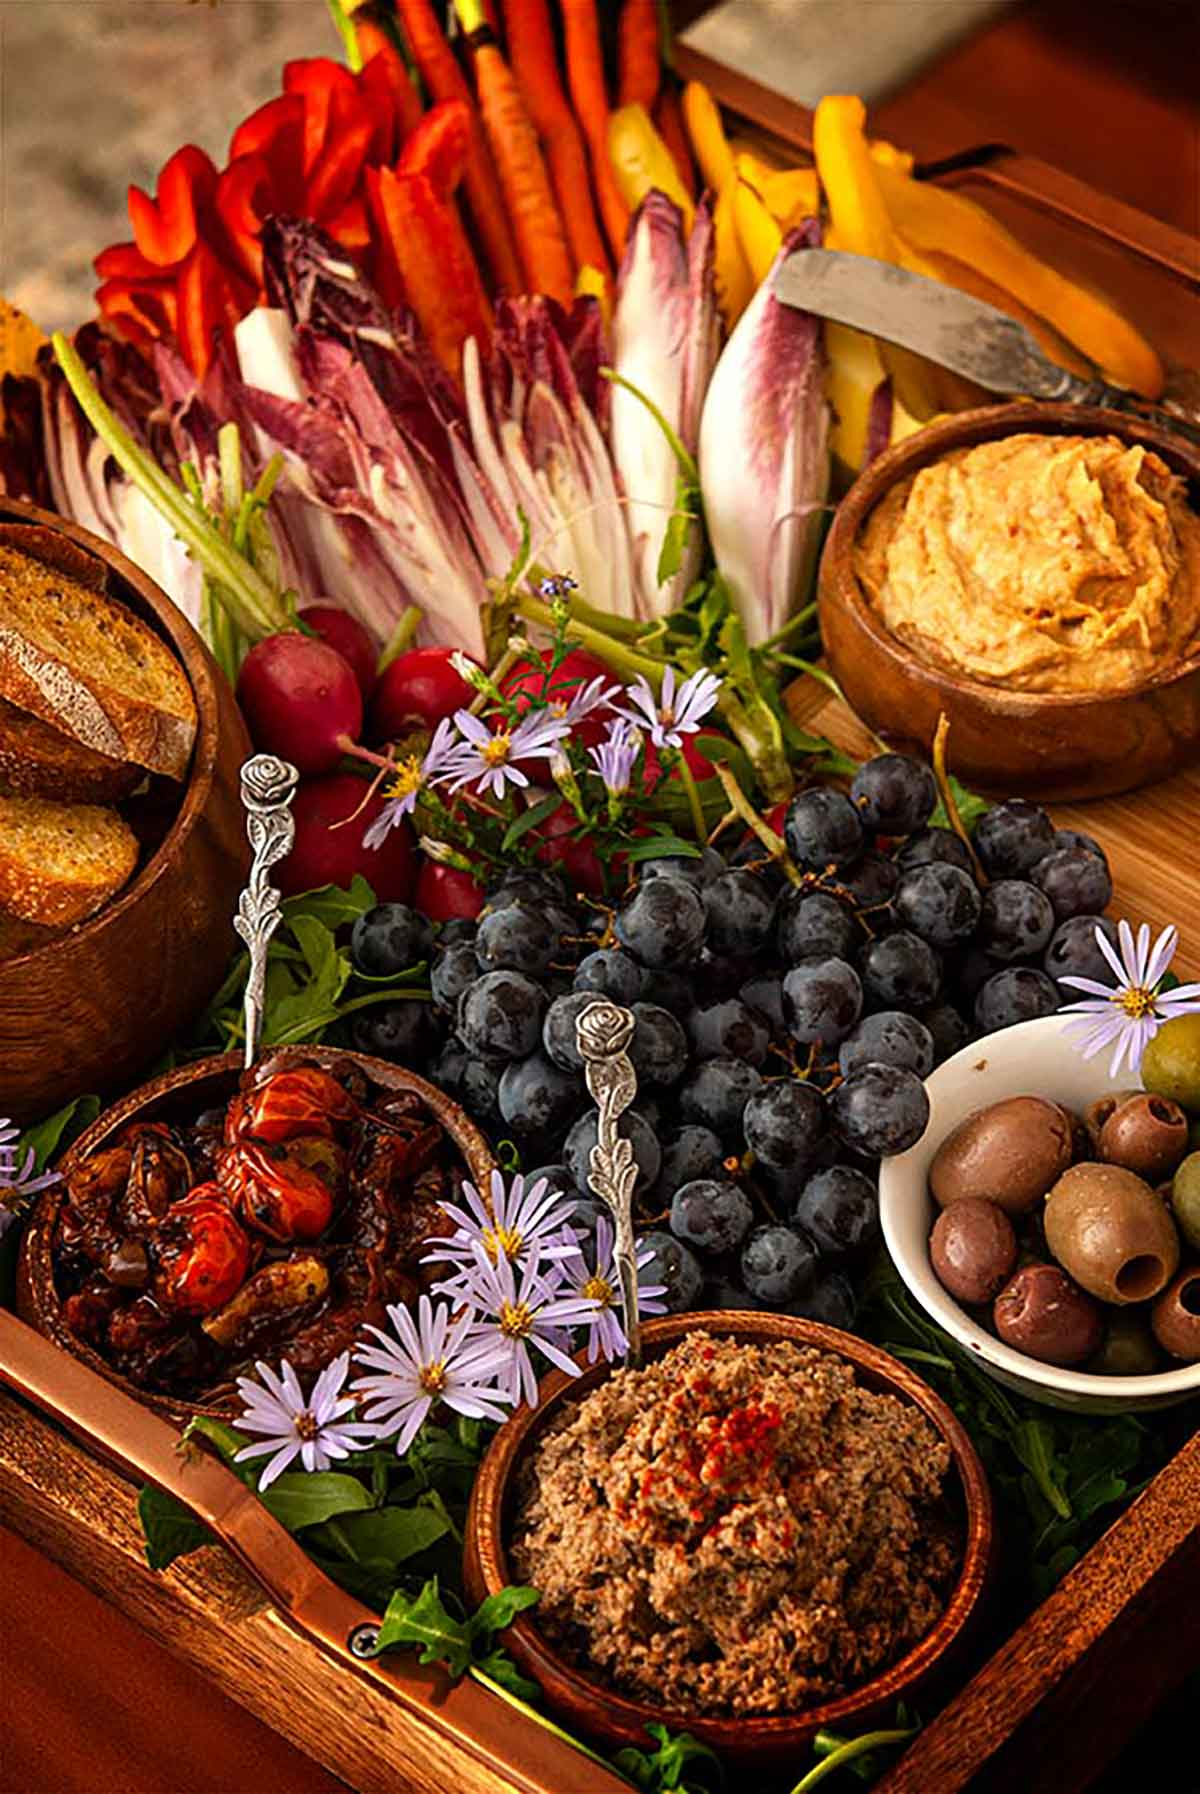 A crudités platter with vegetables, dips, olives, grapes and a bowl of bread on a tray.